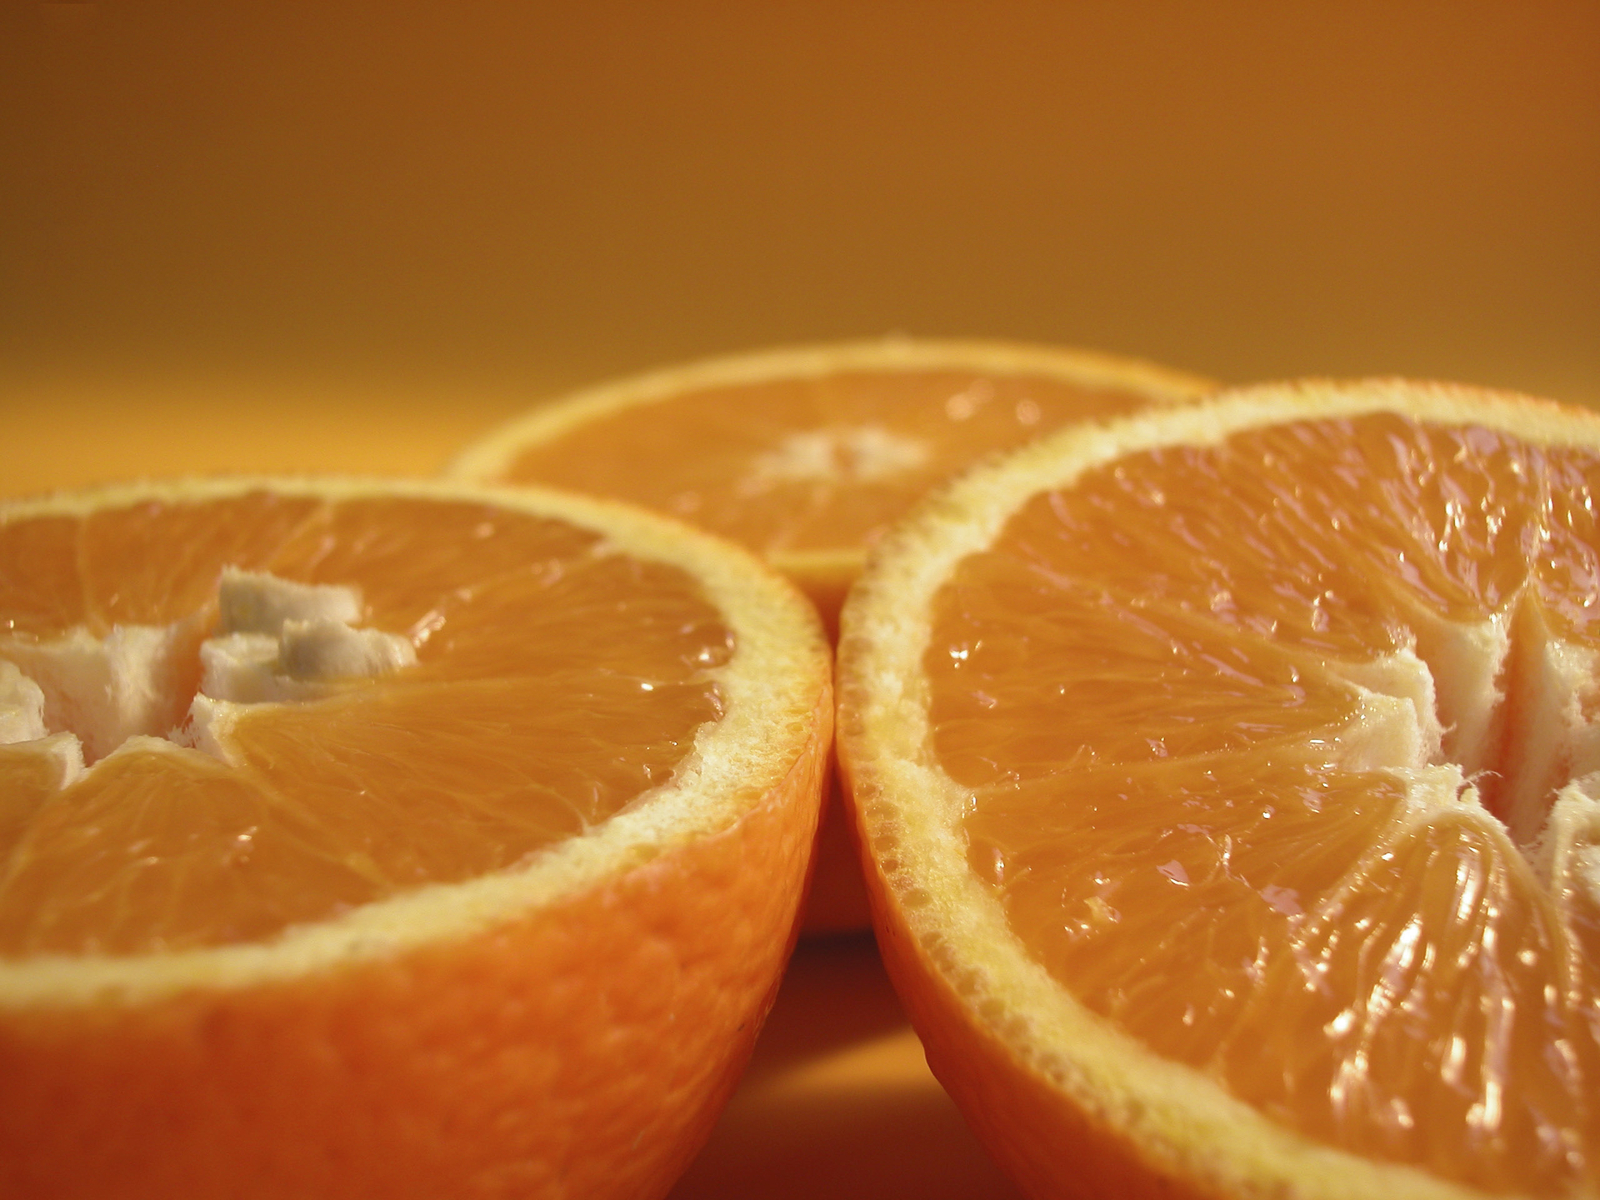 Eat highly acidic foods like oranges in moderation image: lcsdesign